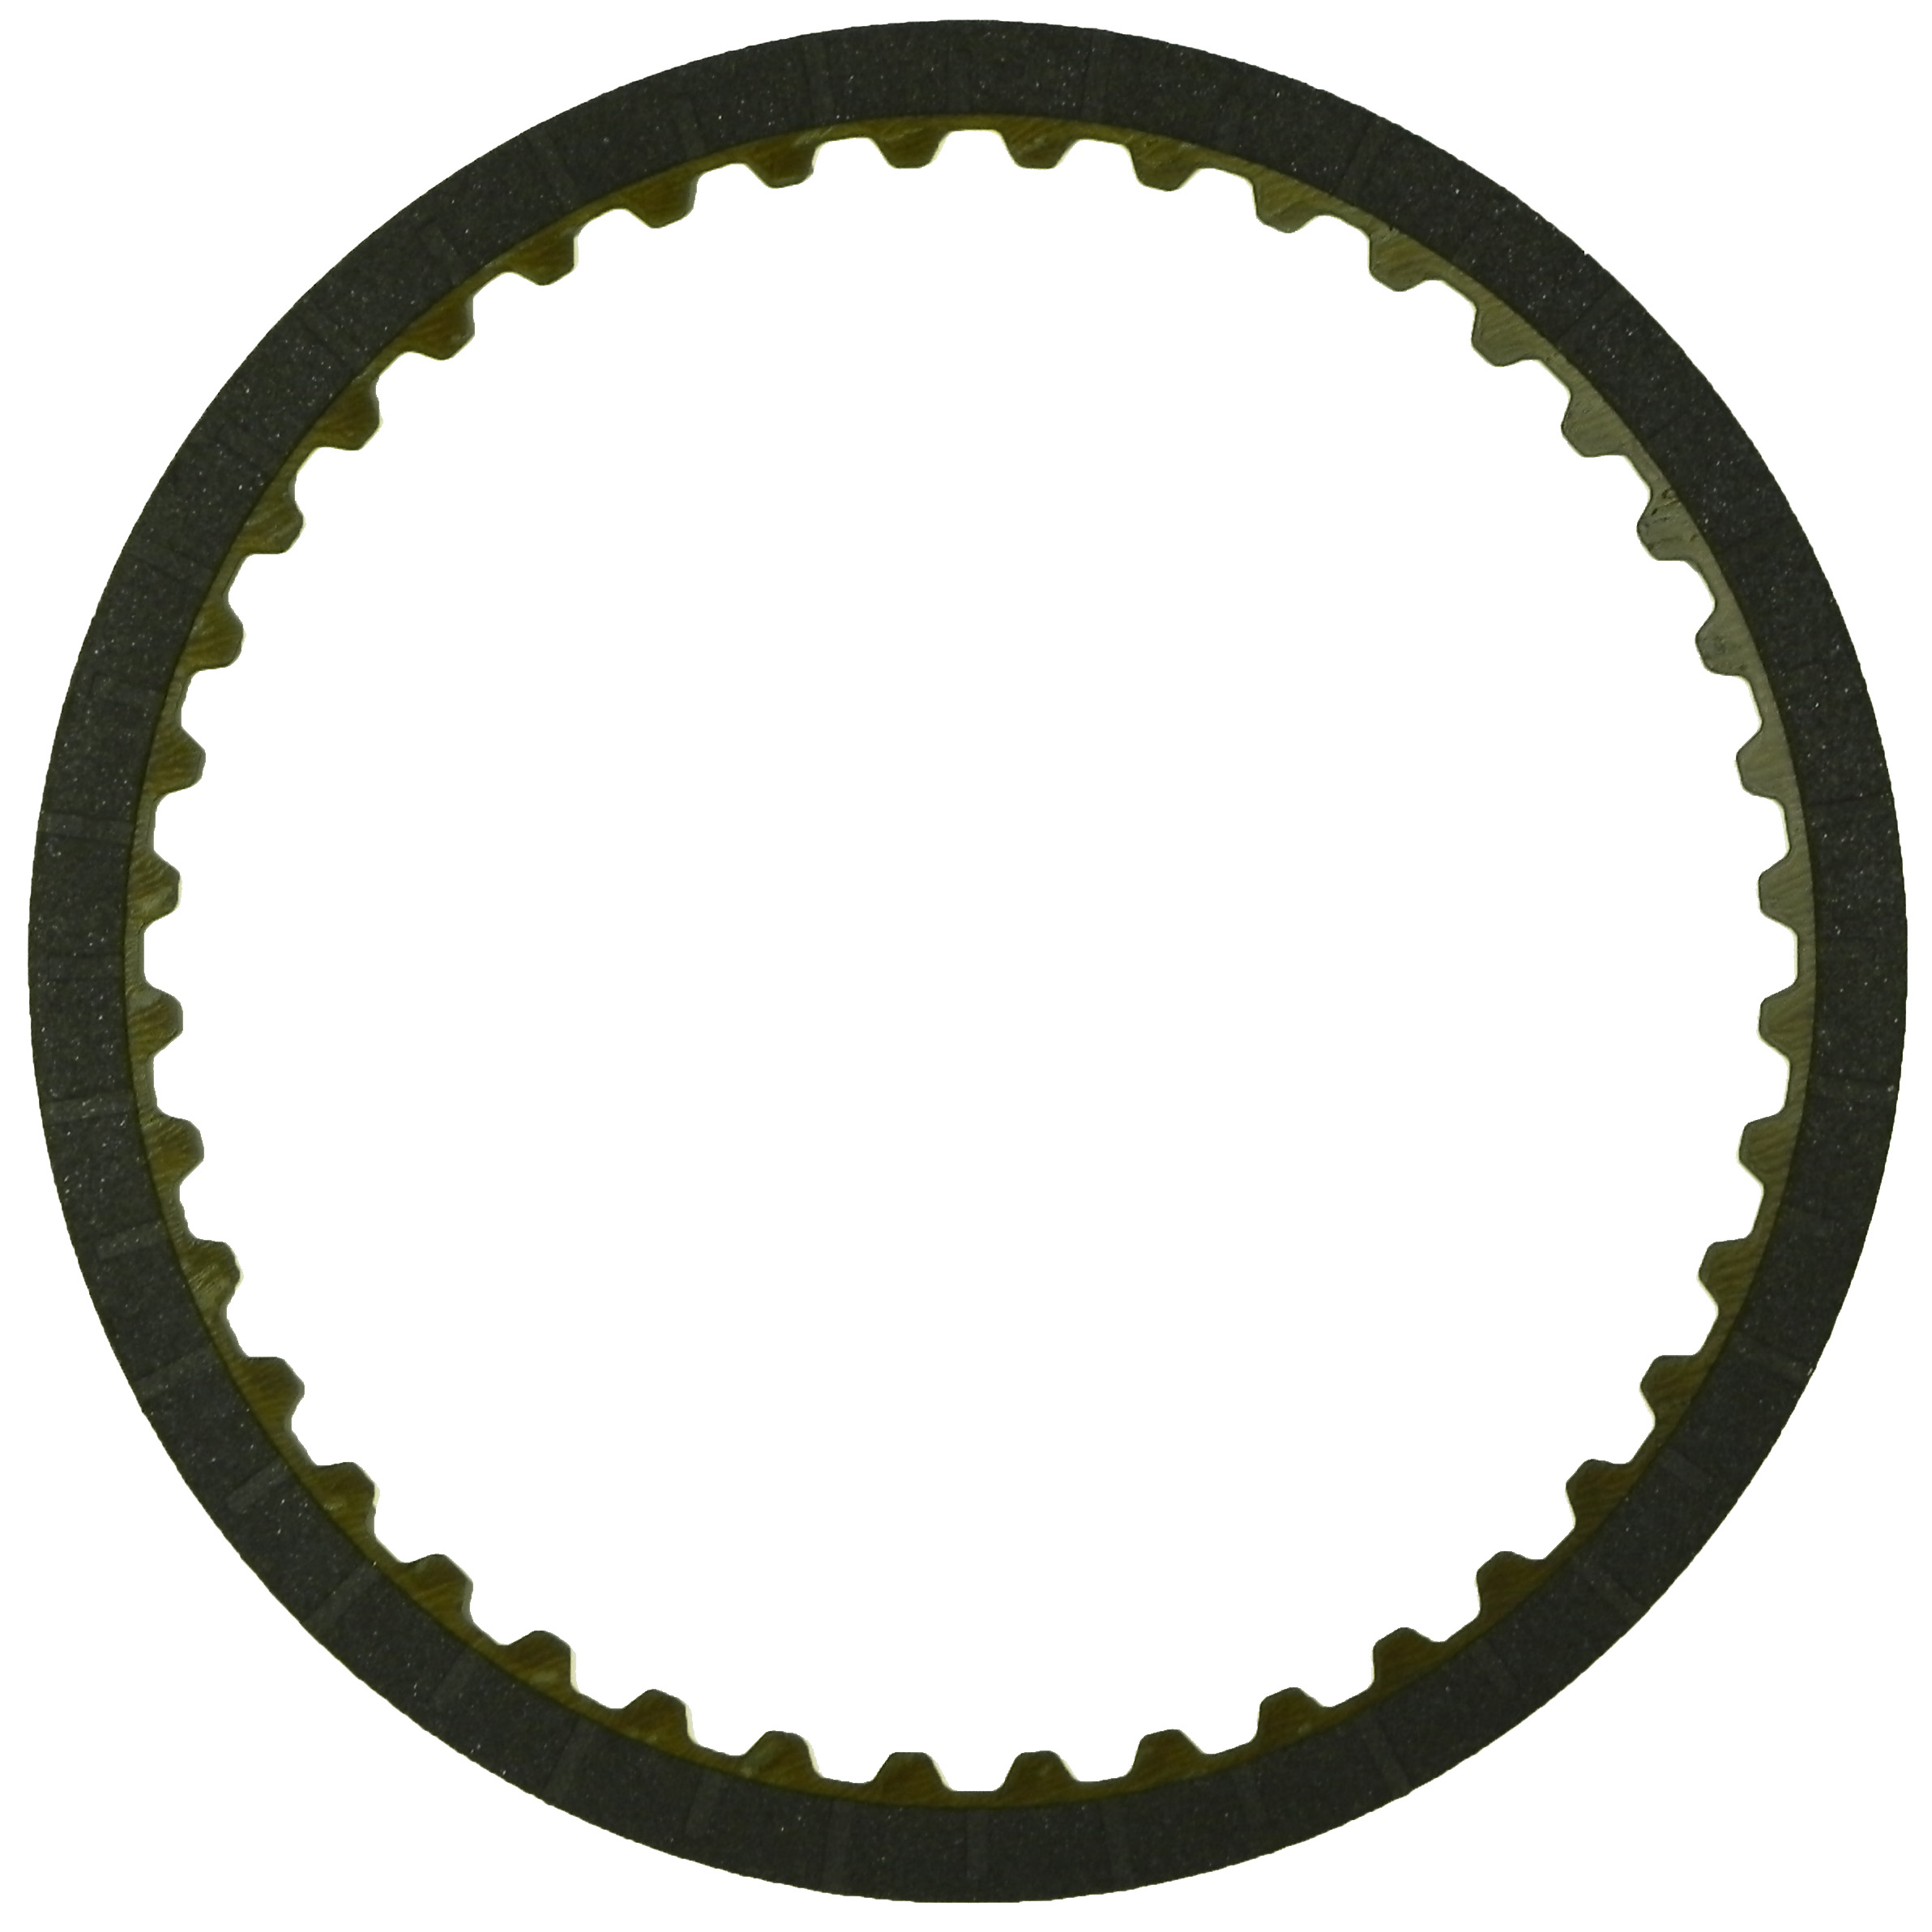 R576575 | 1999-ON Friction Clutch Plate OE Replacement Overdrive, 2nd Coast